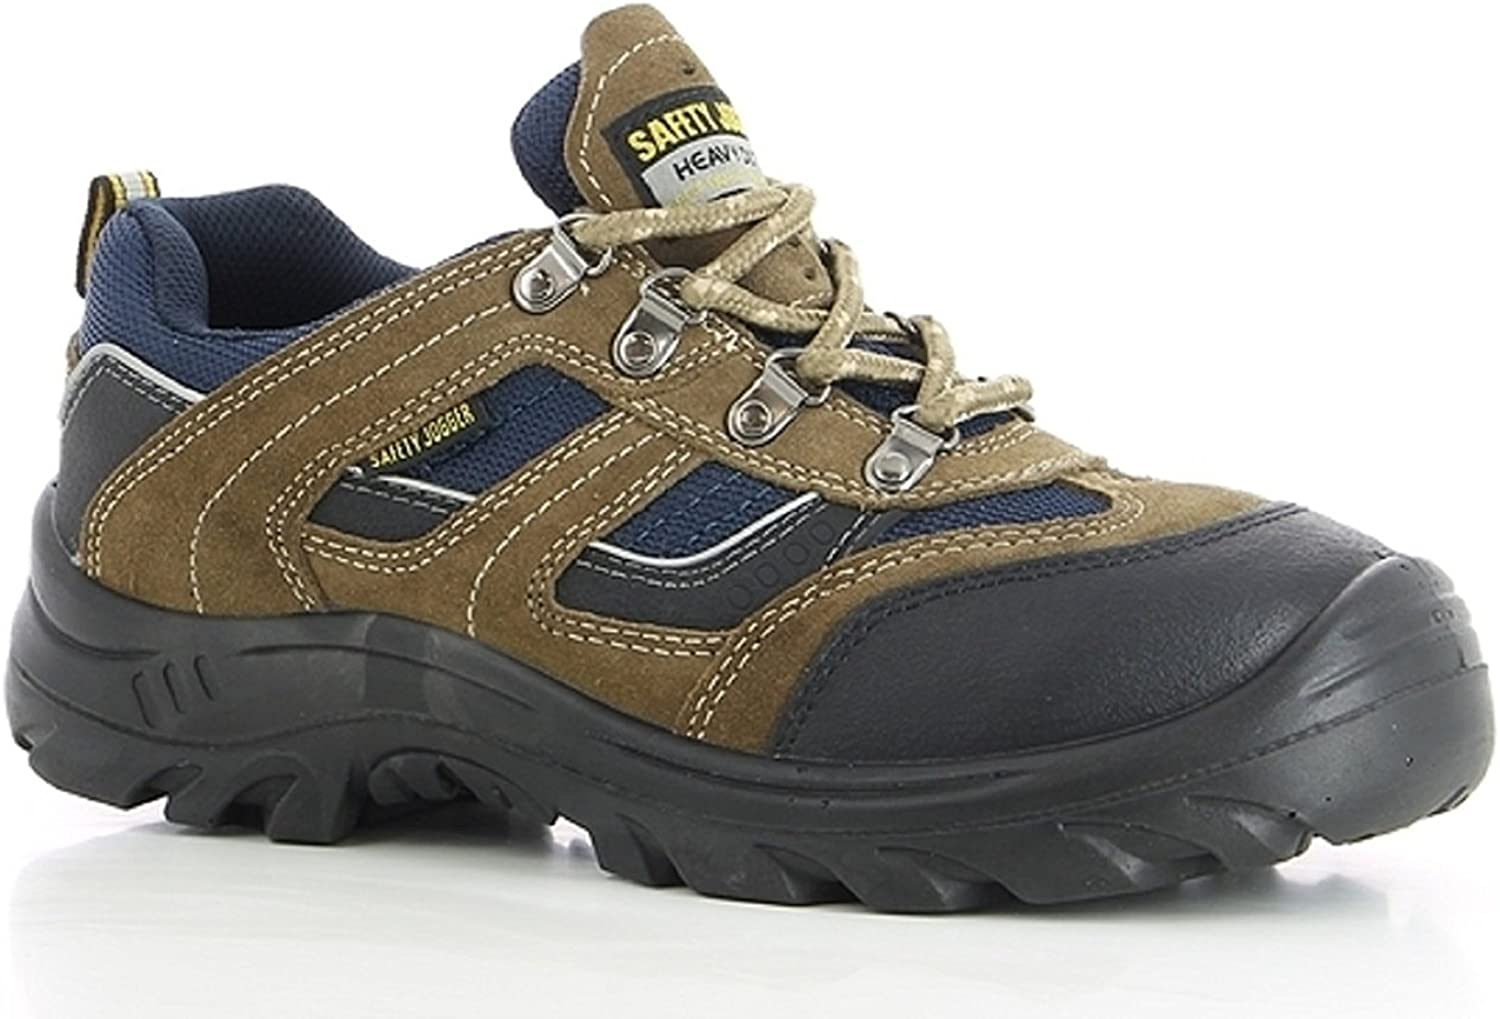 Lightweight and Sporty S3 Safety shoes Type X2020P in Sizes UK 4 to 12